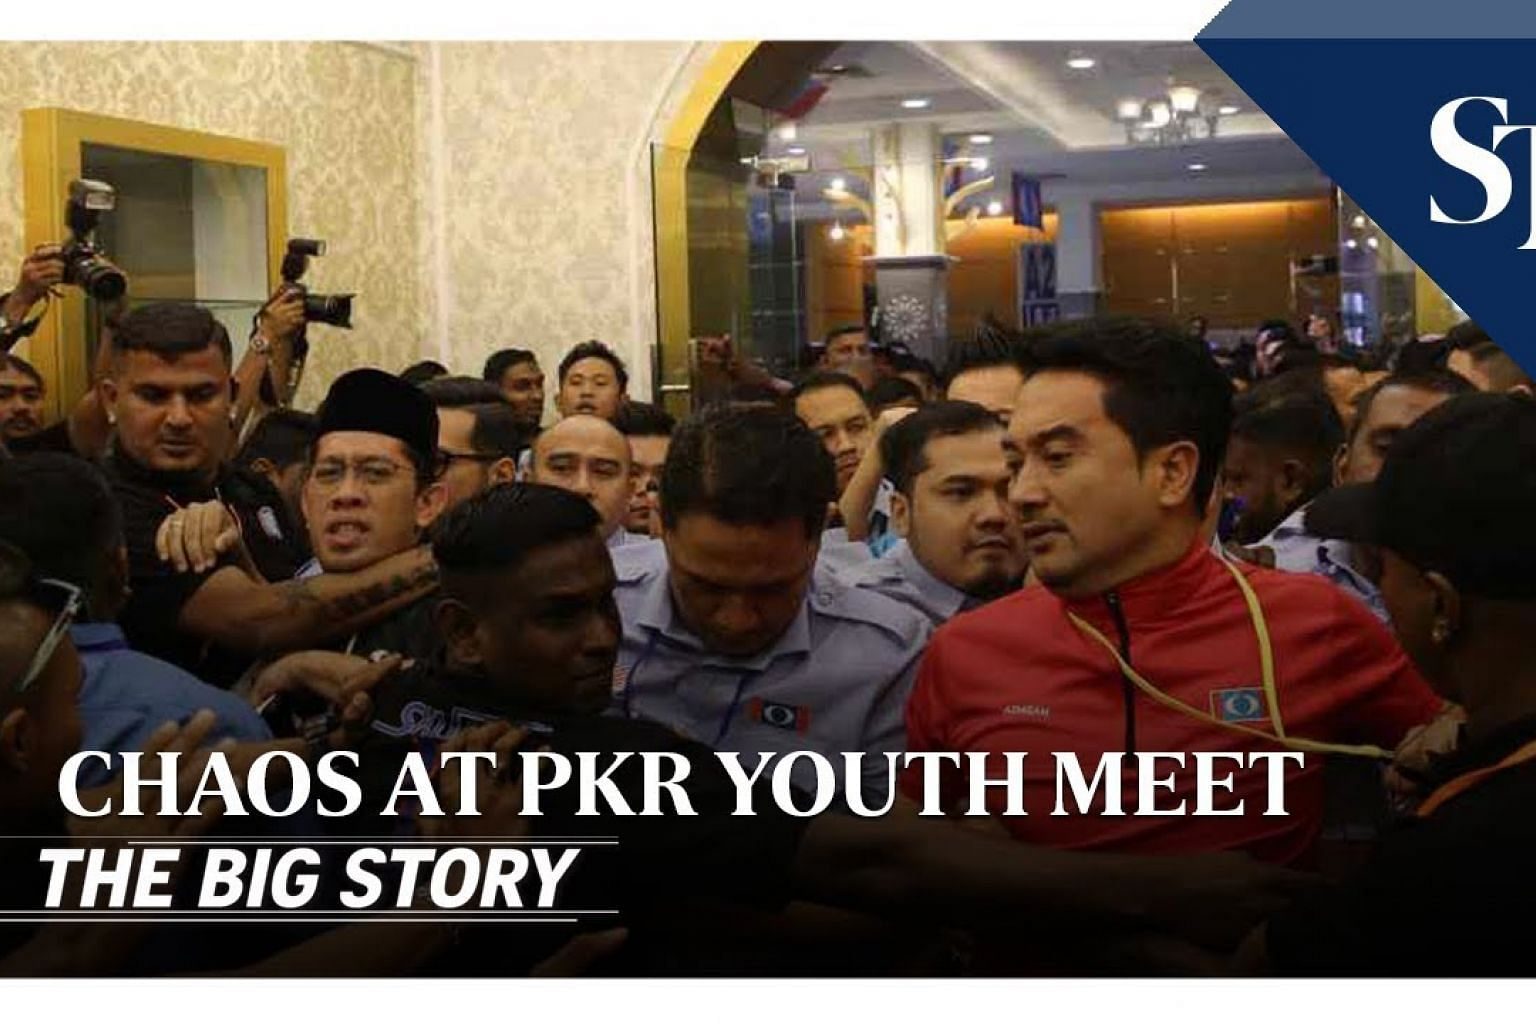 Chaos at PKR youth meet despite truce | THE BIG STORY | The Straits Times